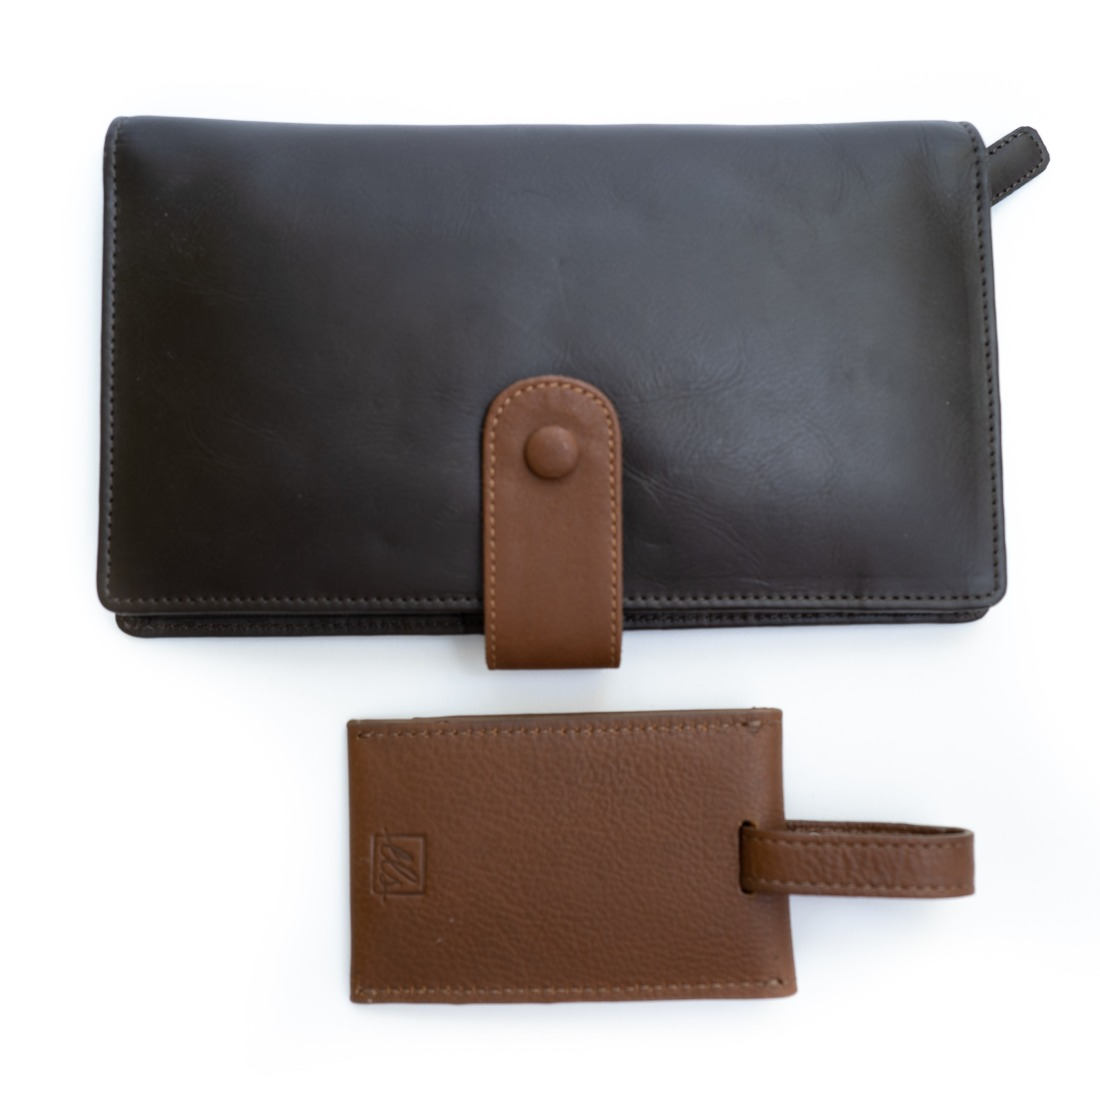 Classic travel Wallet w/ Luggage Tag